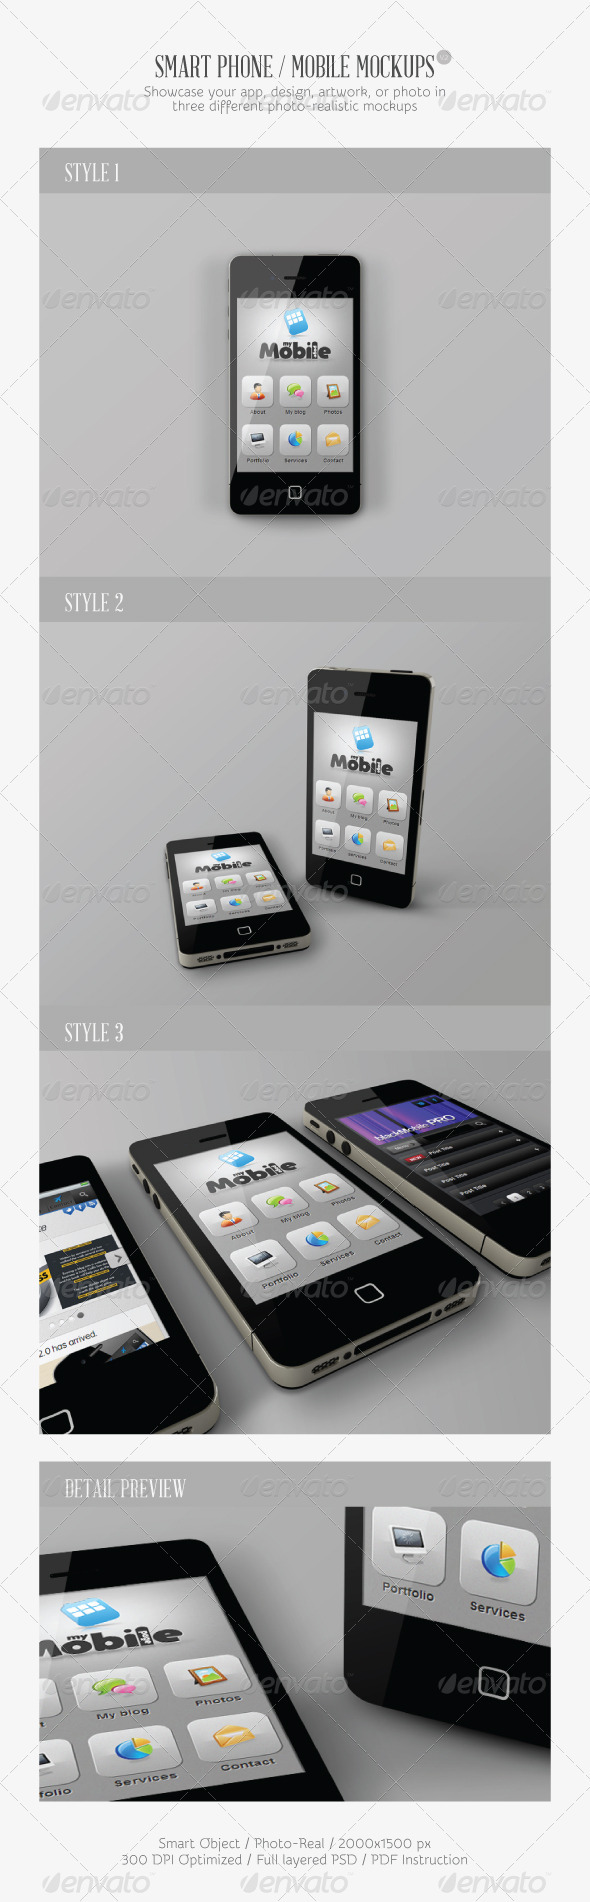 Smart Phone / Mobile Mock-ups V2 - Mobile Displays